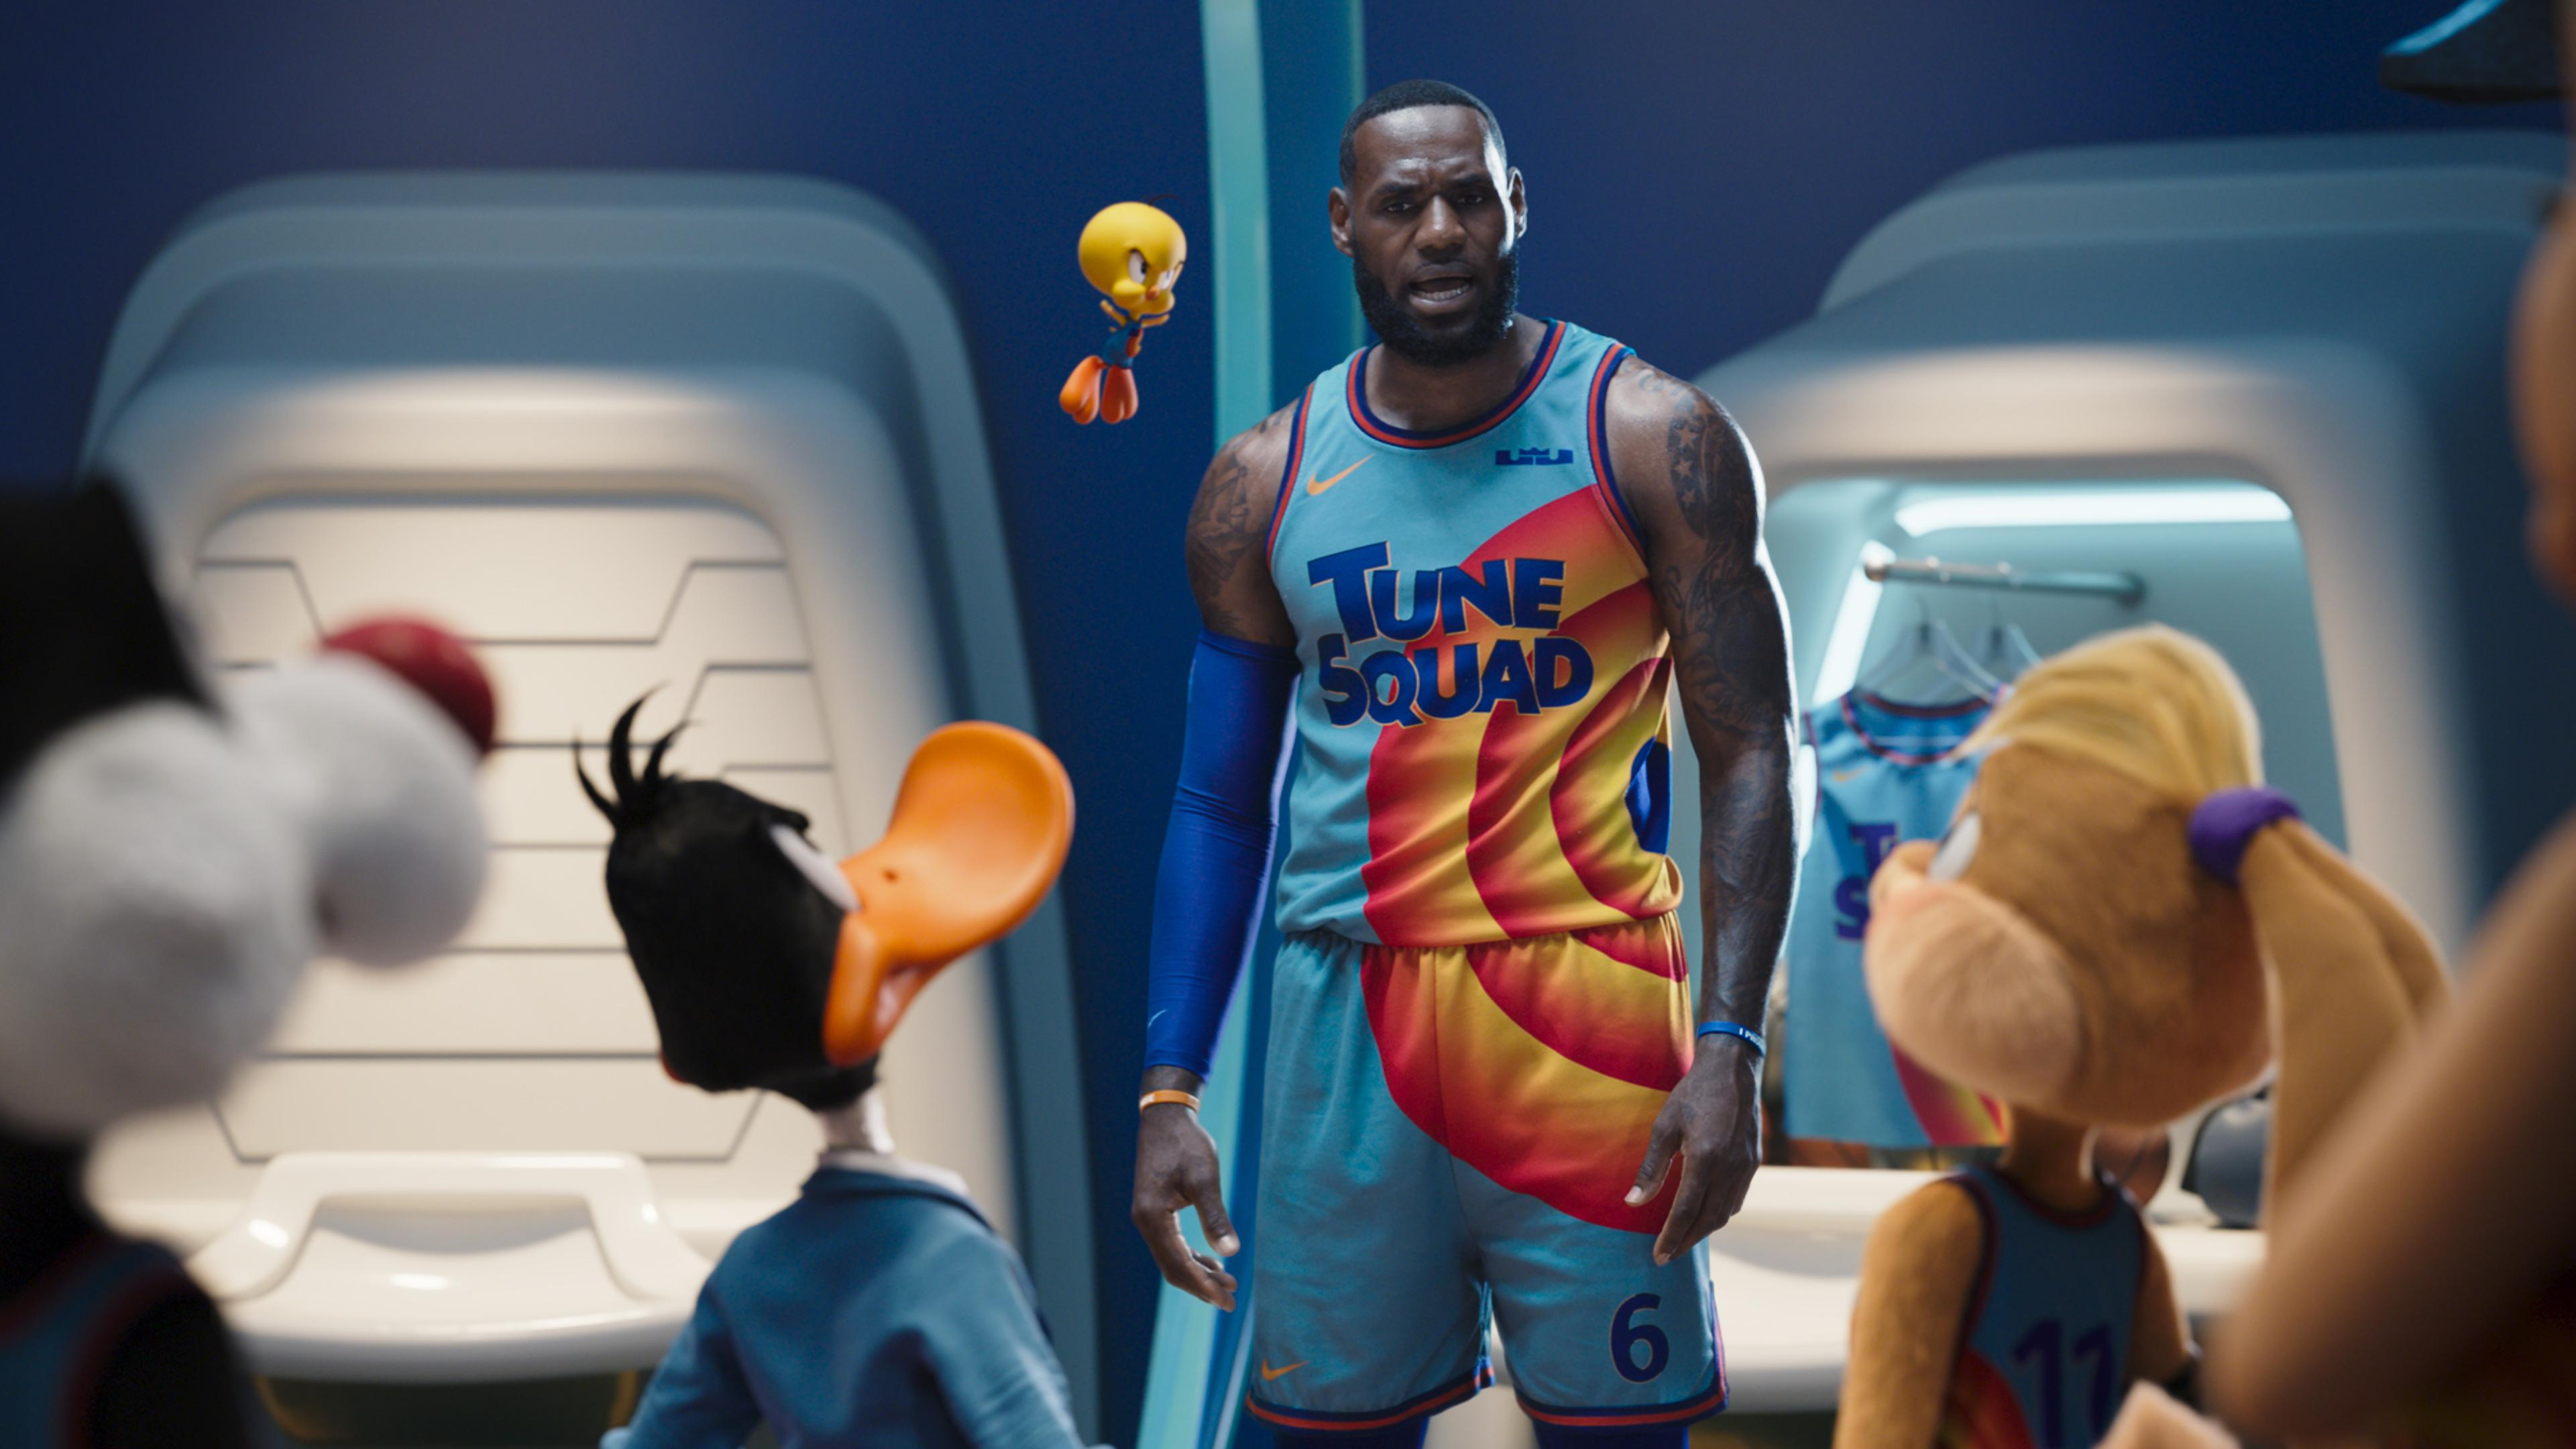 L-R Backs to Camera) SYLVESTER, DAFFY DUCK, LOLA BUNNY, (Center frame) LEBRON JAMES, and TWEETY BIRD in ″Space Jam: A New Legacy'